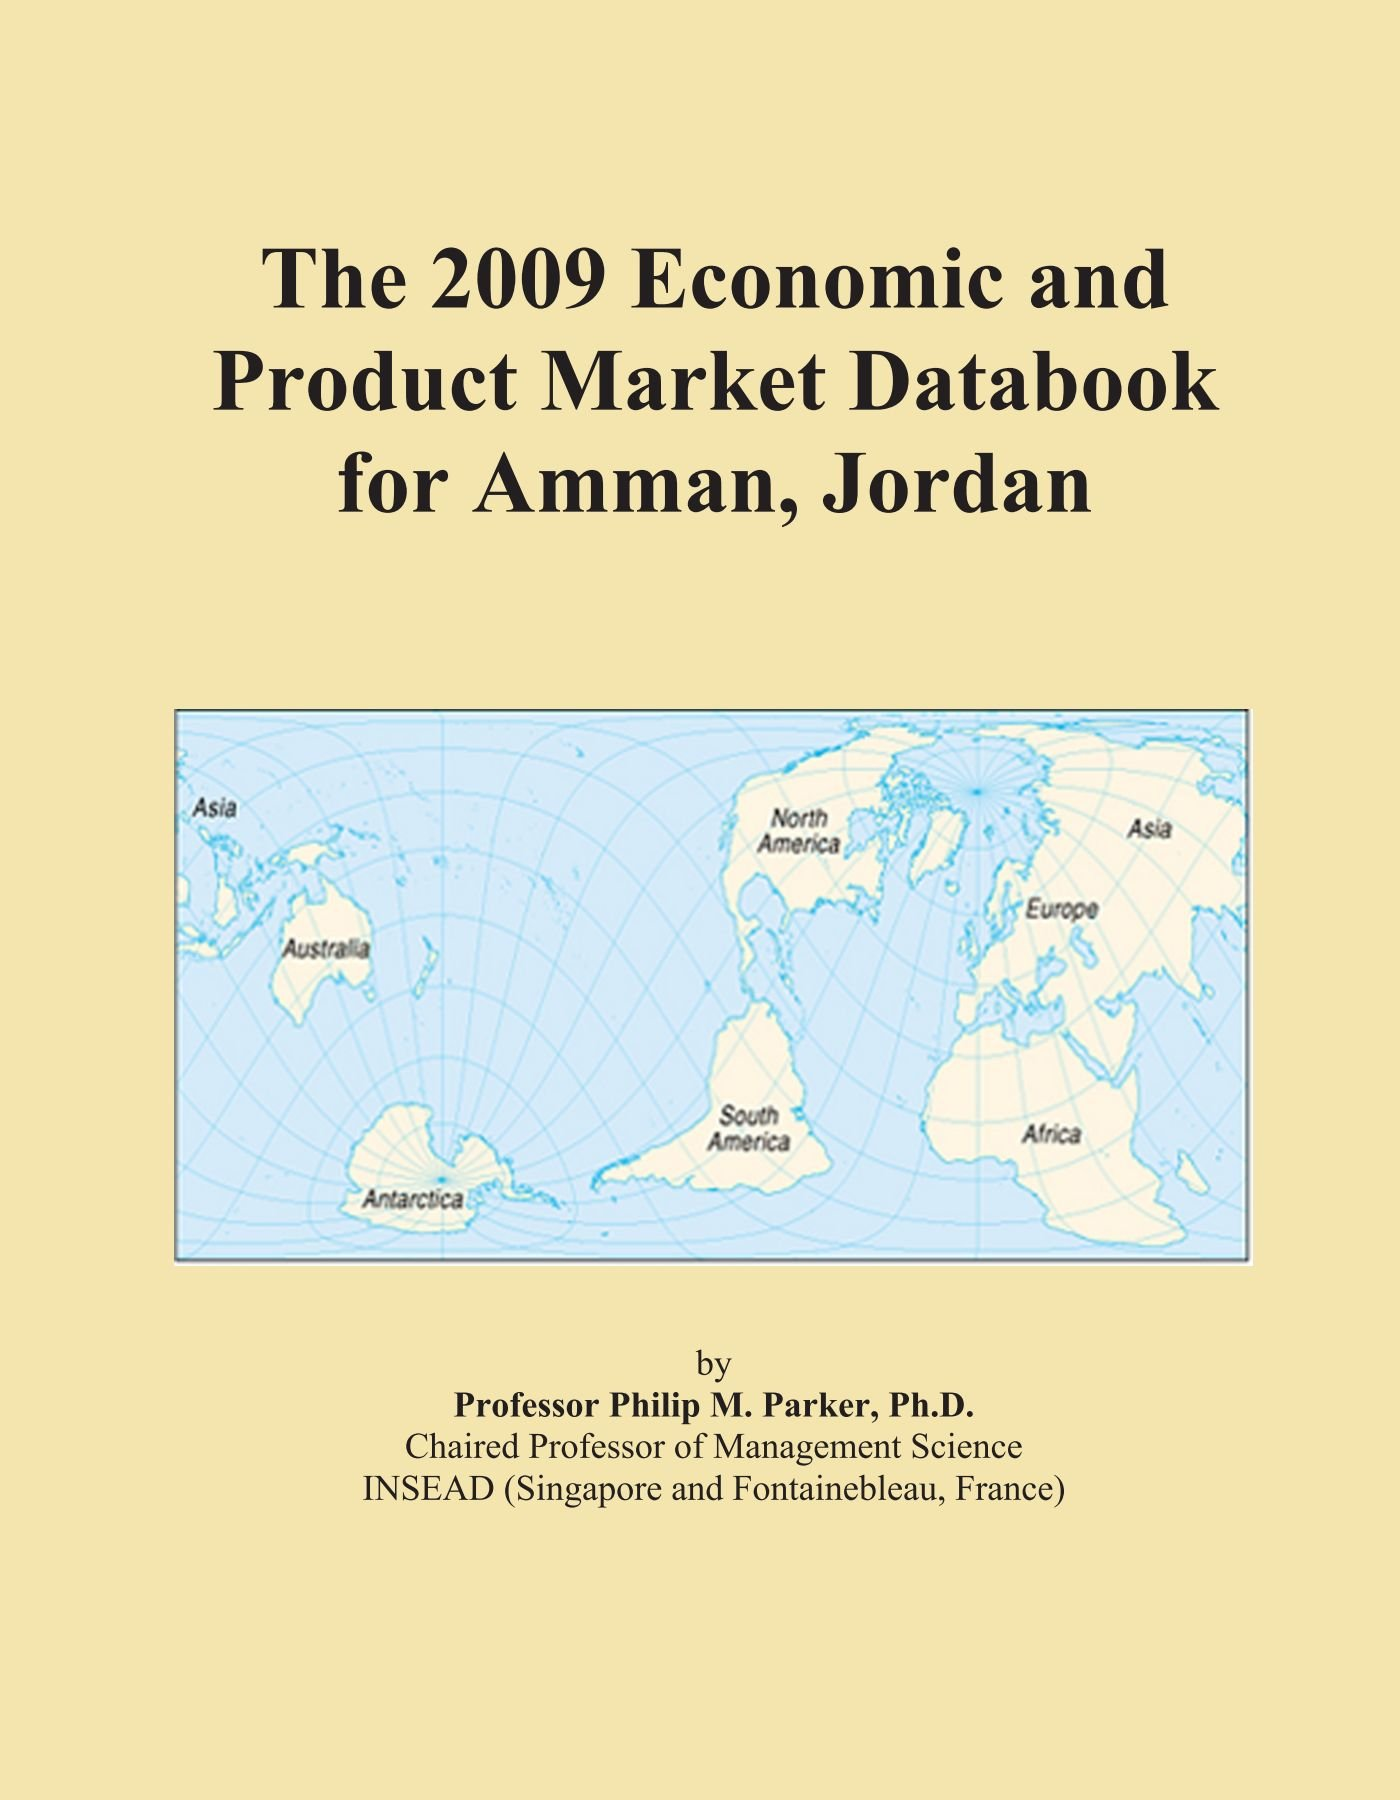 The 2009 Economic and Product Market Databook for Amman, Jordan pdf